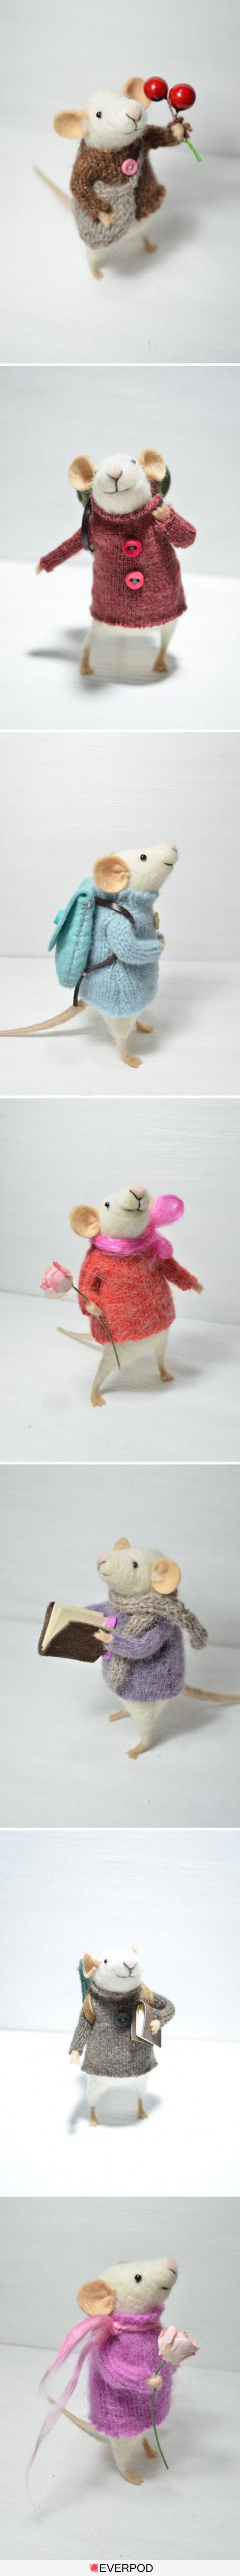 cutest Mouse ever! needle felted